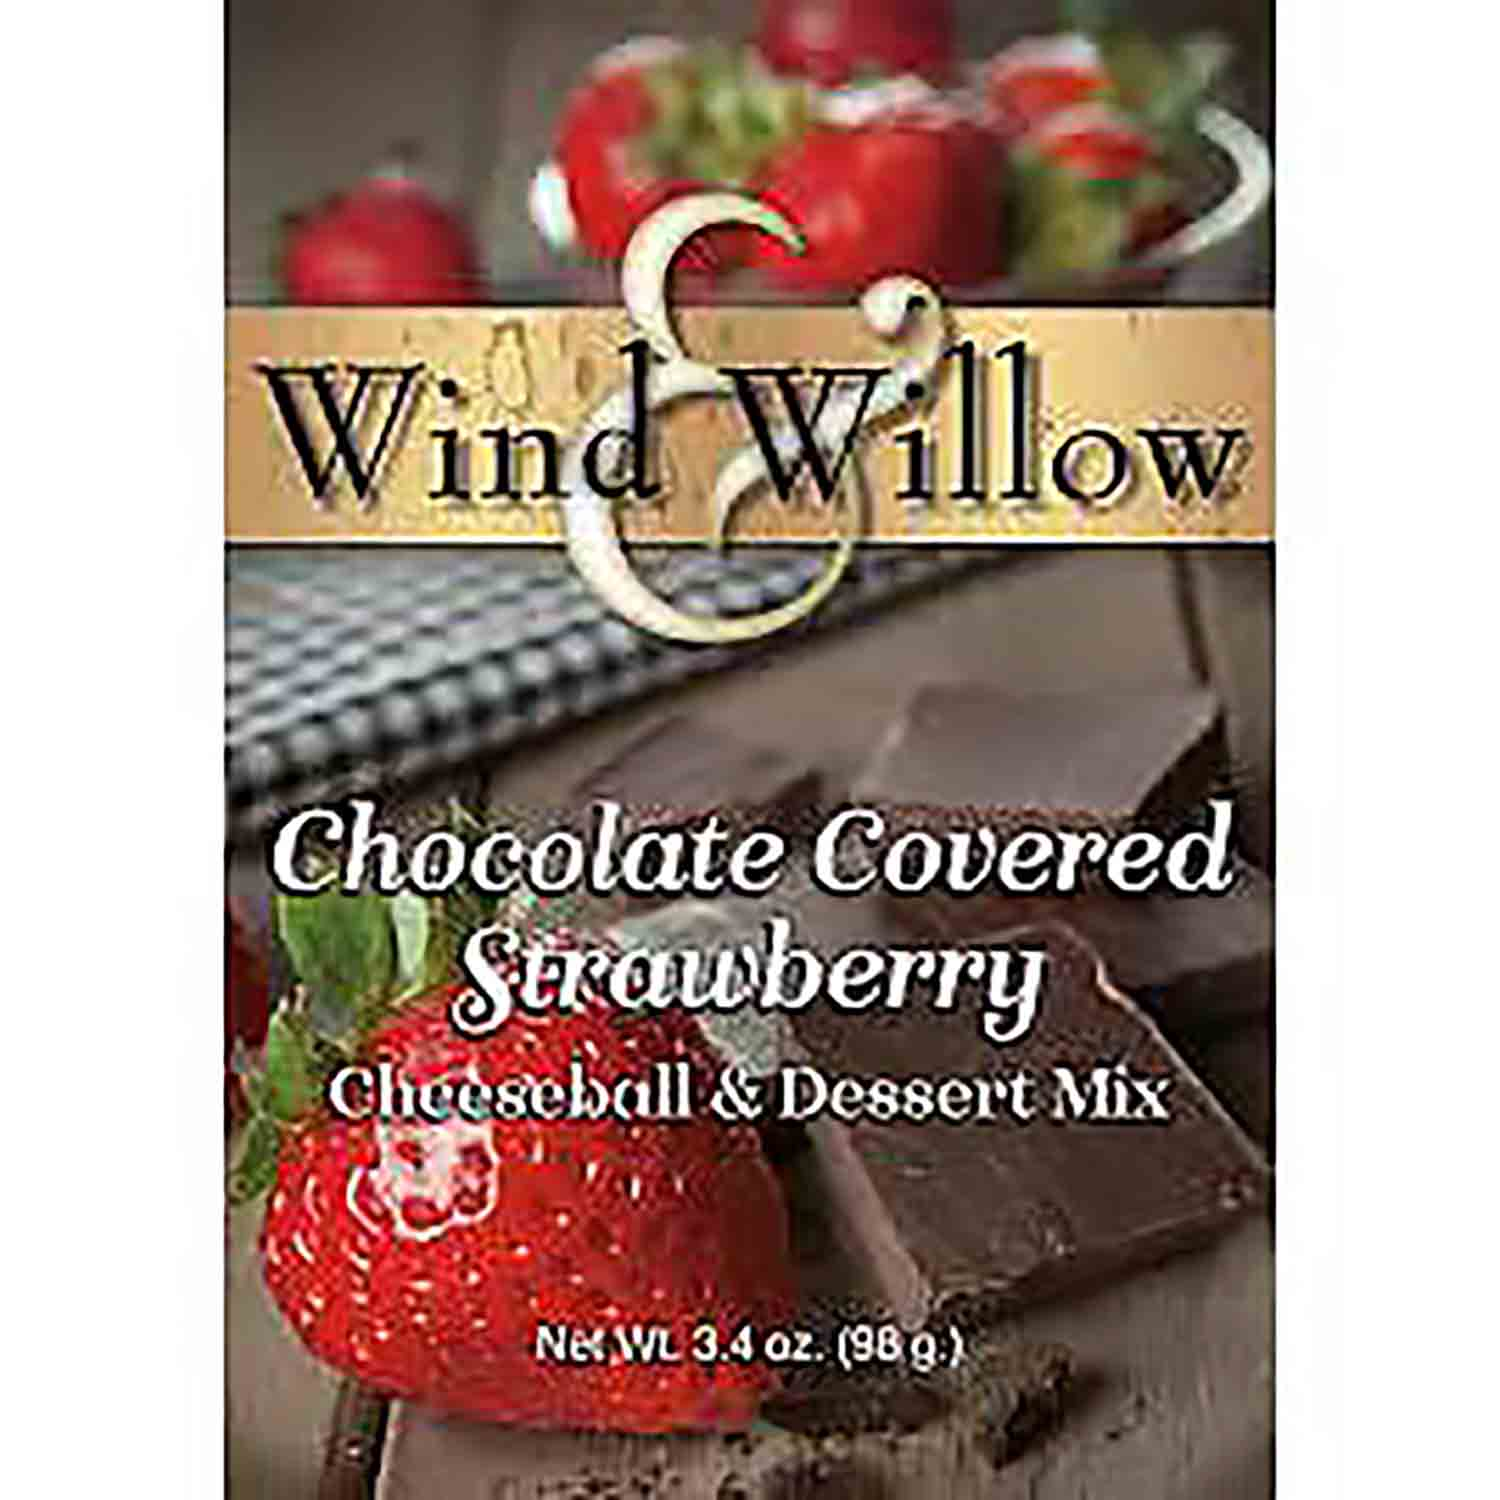 Chocolate Covered Strawberry Cheeseball Mix